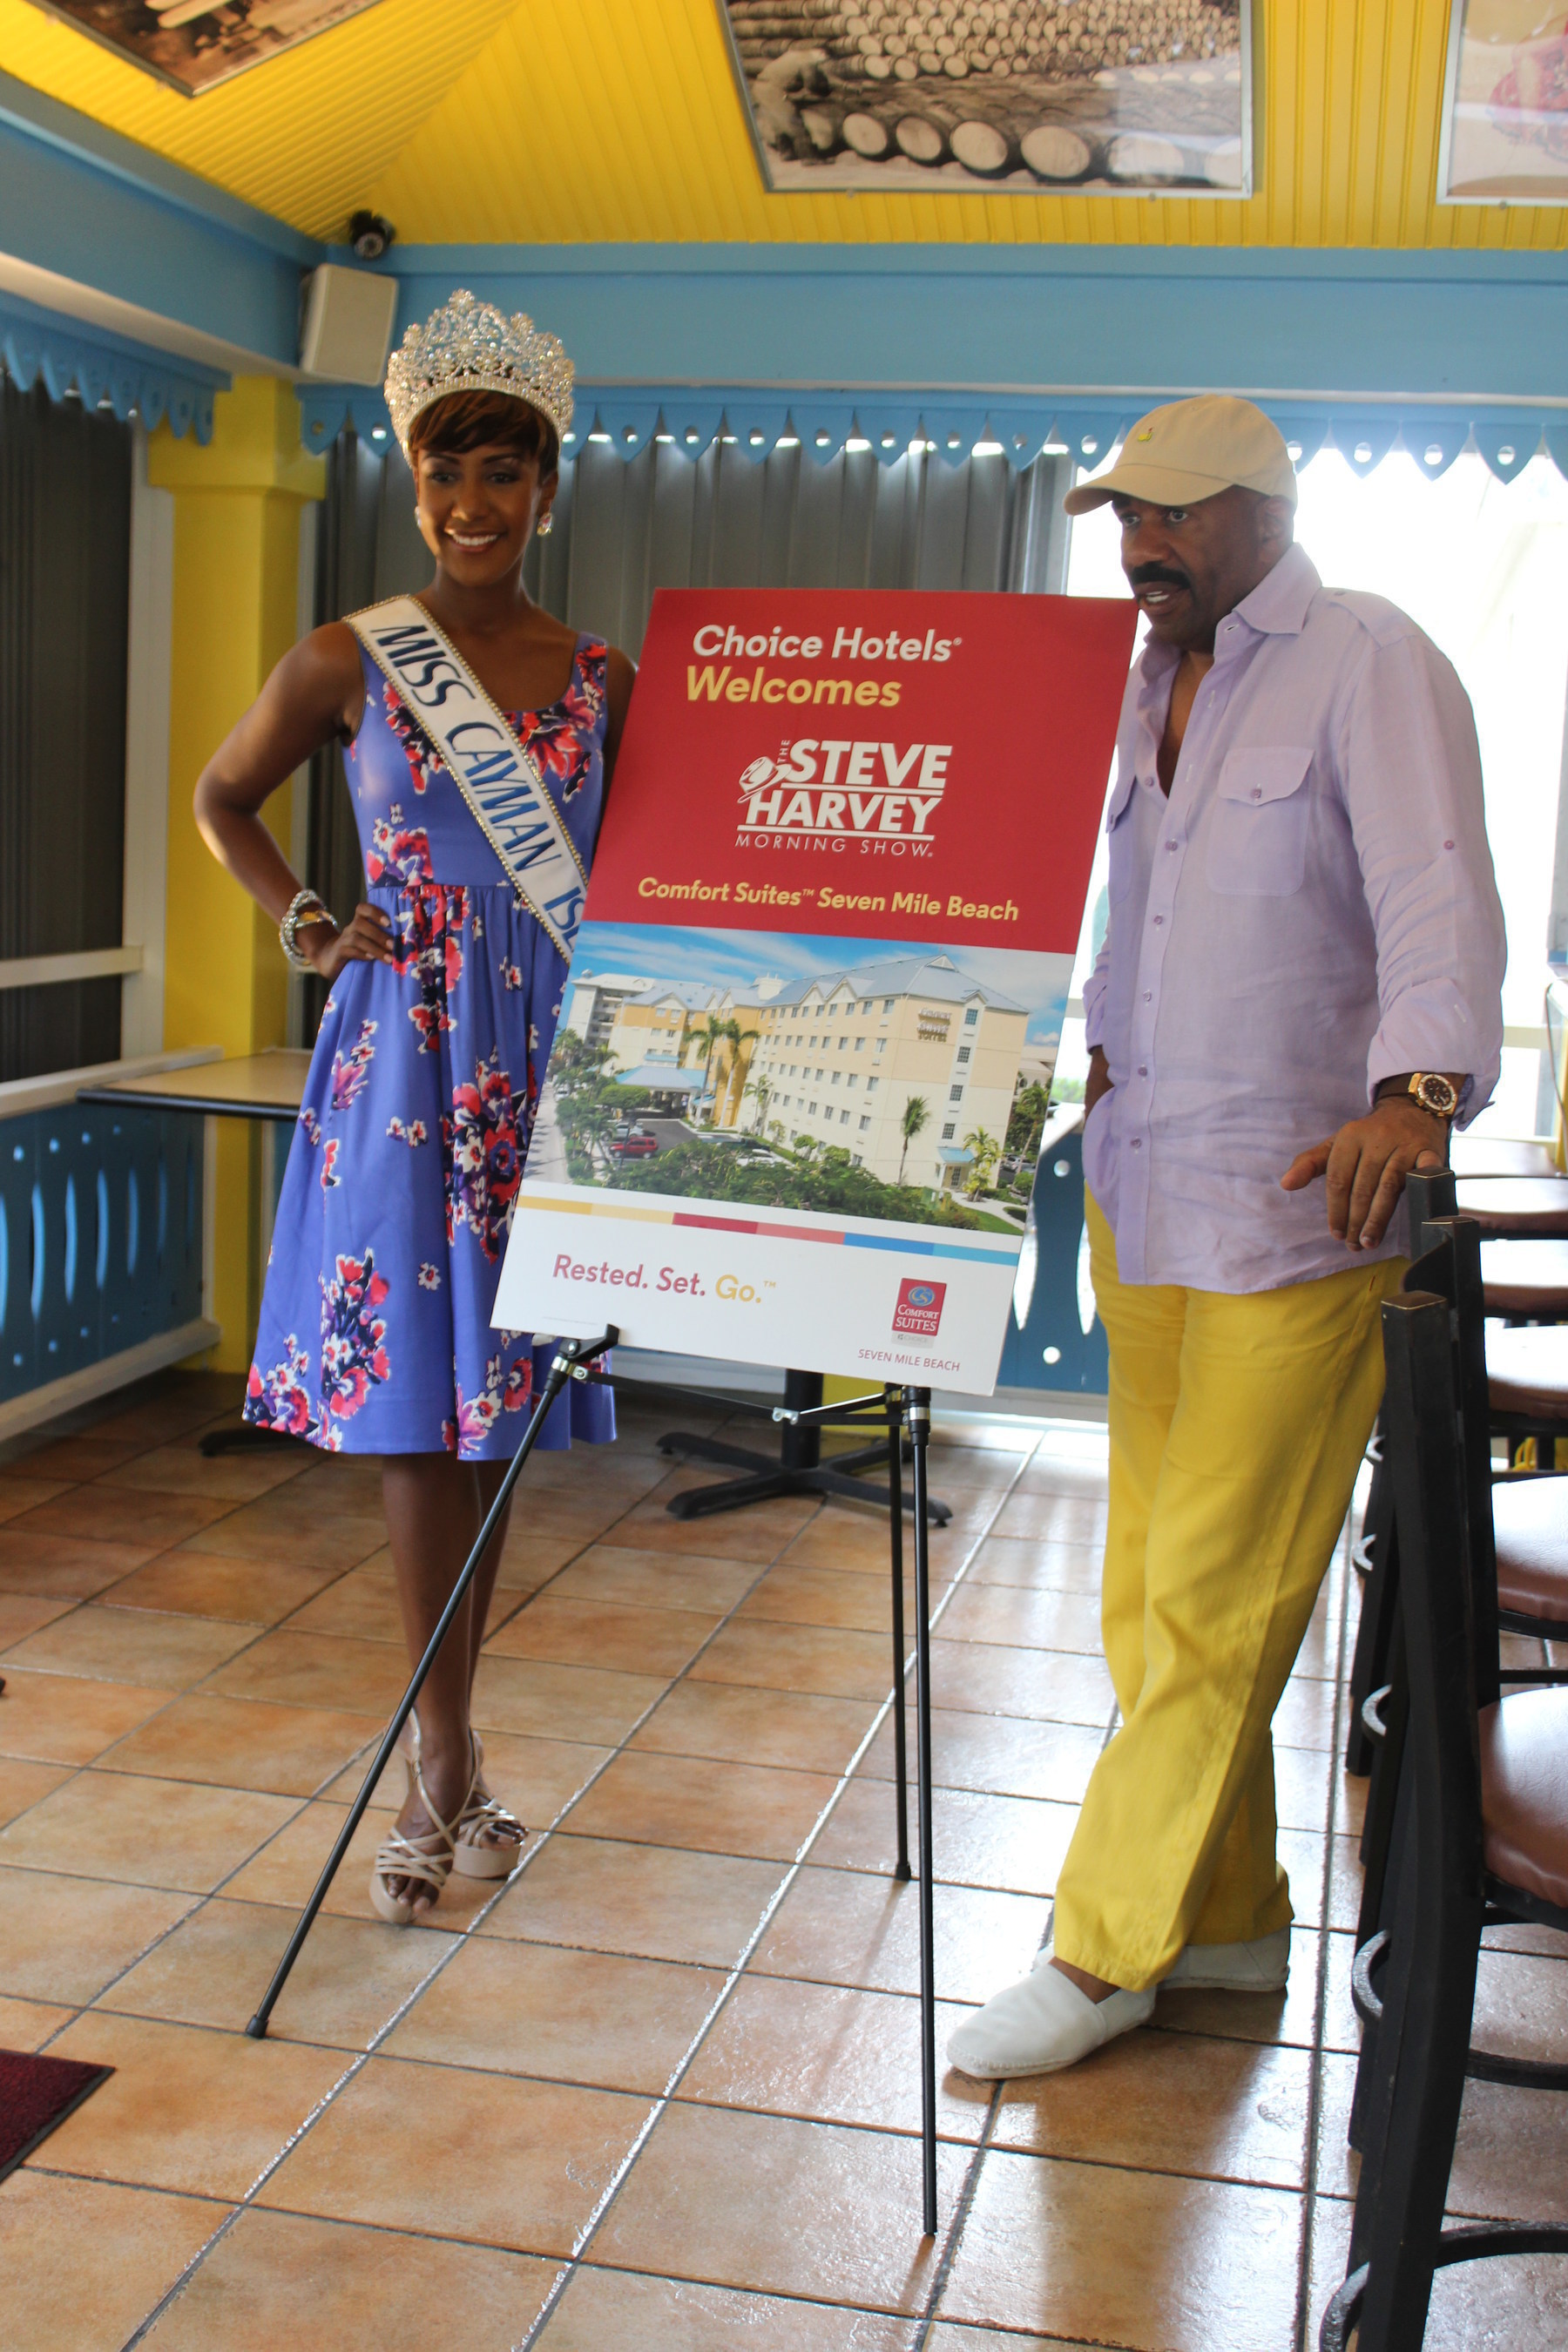 Steve Harvey and Miss Cayman Discuss Pageant Tips at Comfort Suites in Grand Cayman